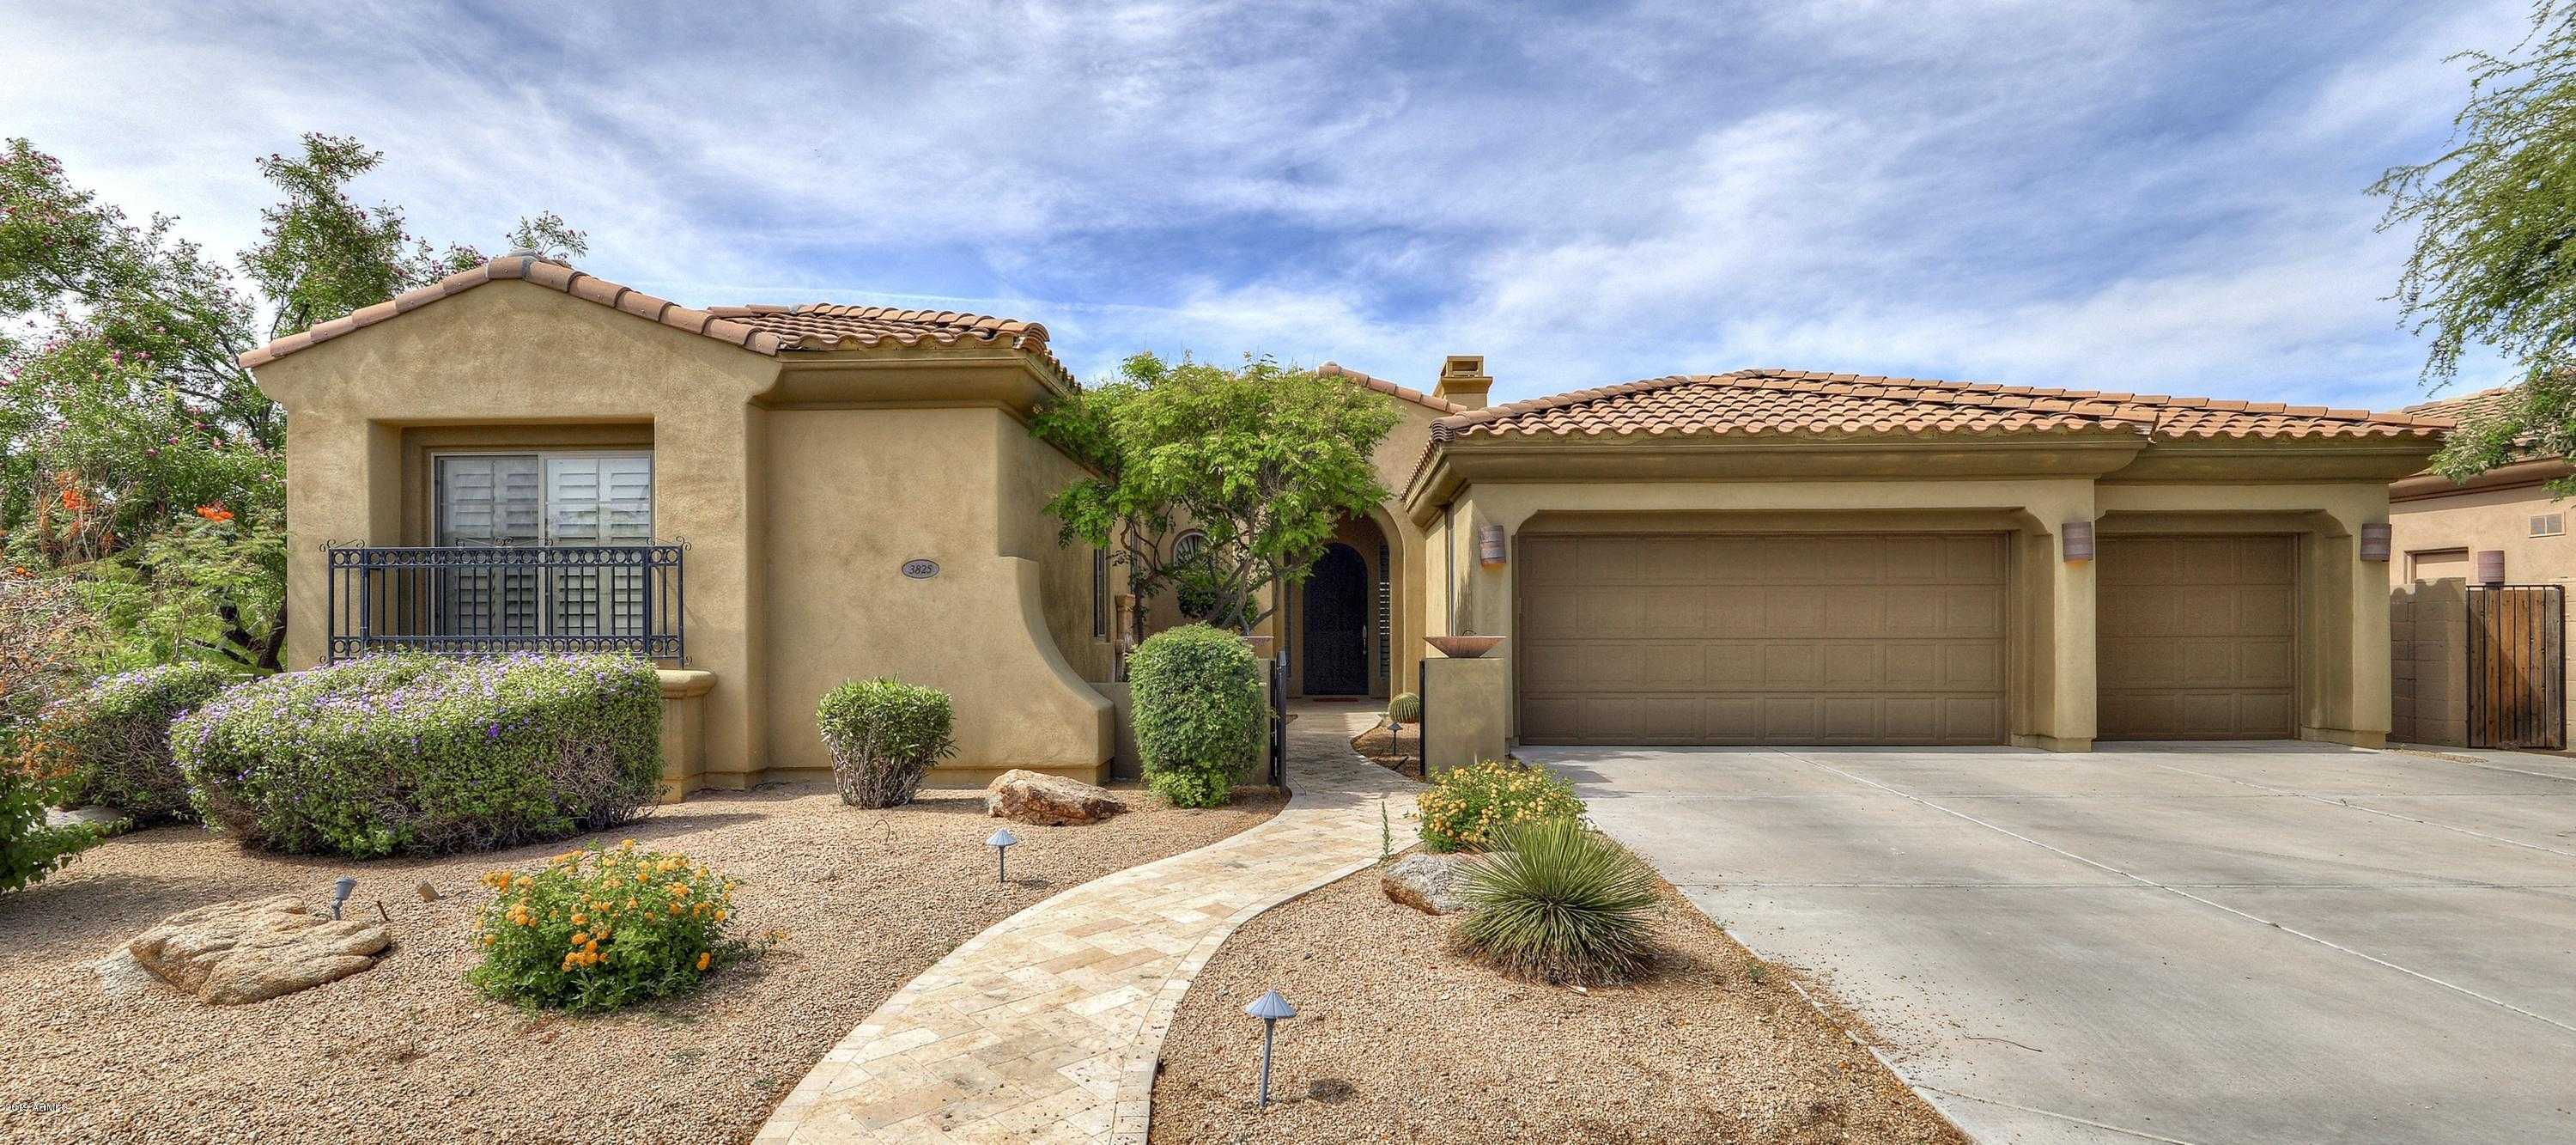 $699,999 - 3Br/3Ba - Home for Sale in Village 7 At Aviano, Phoenix